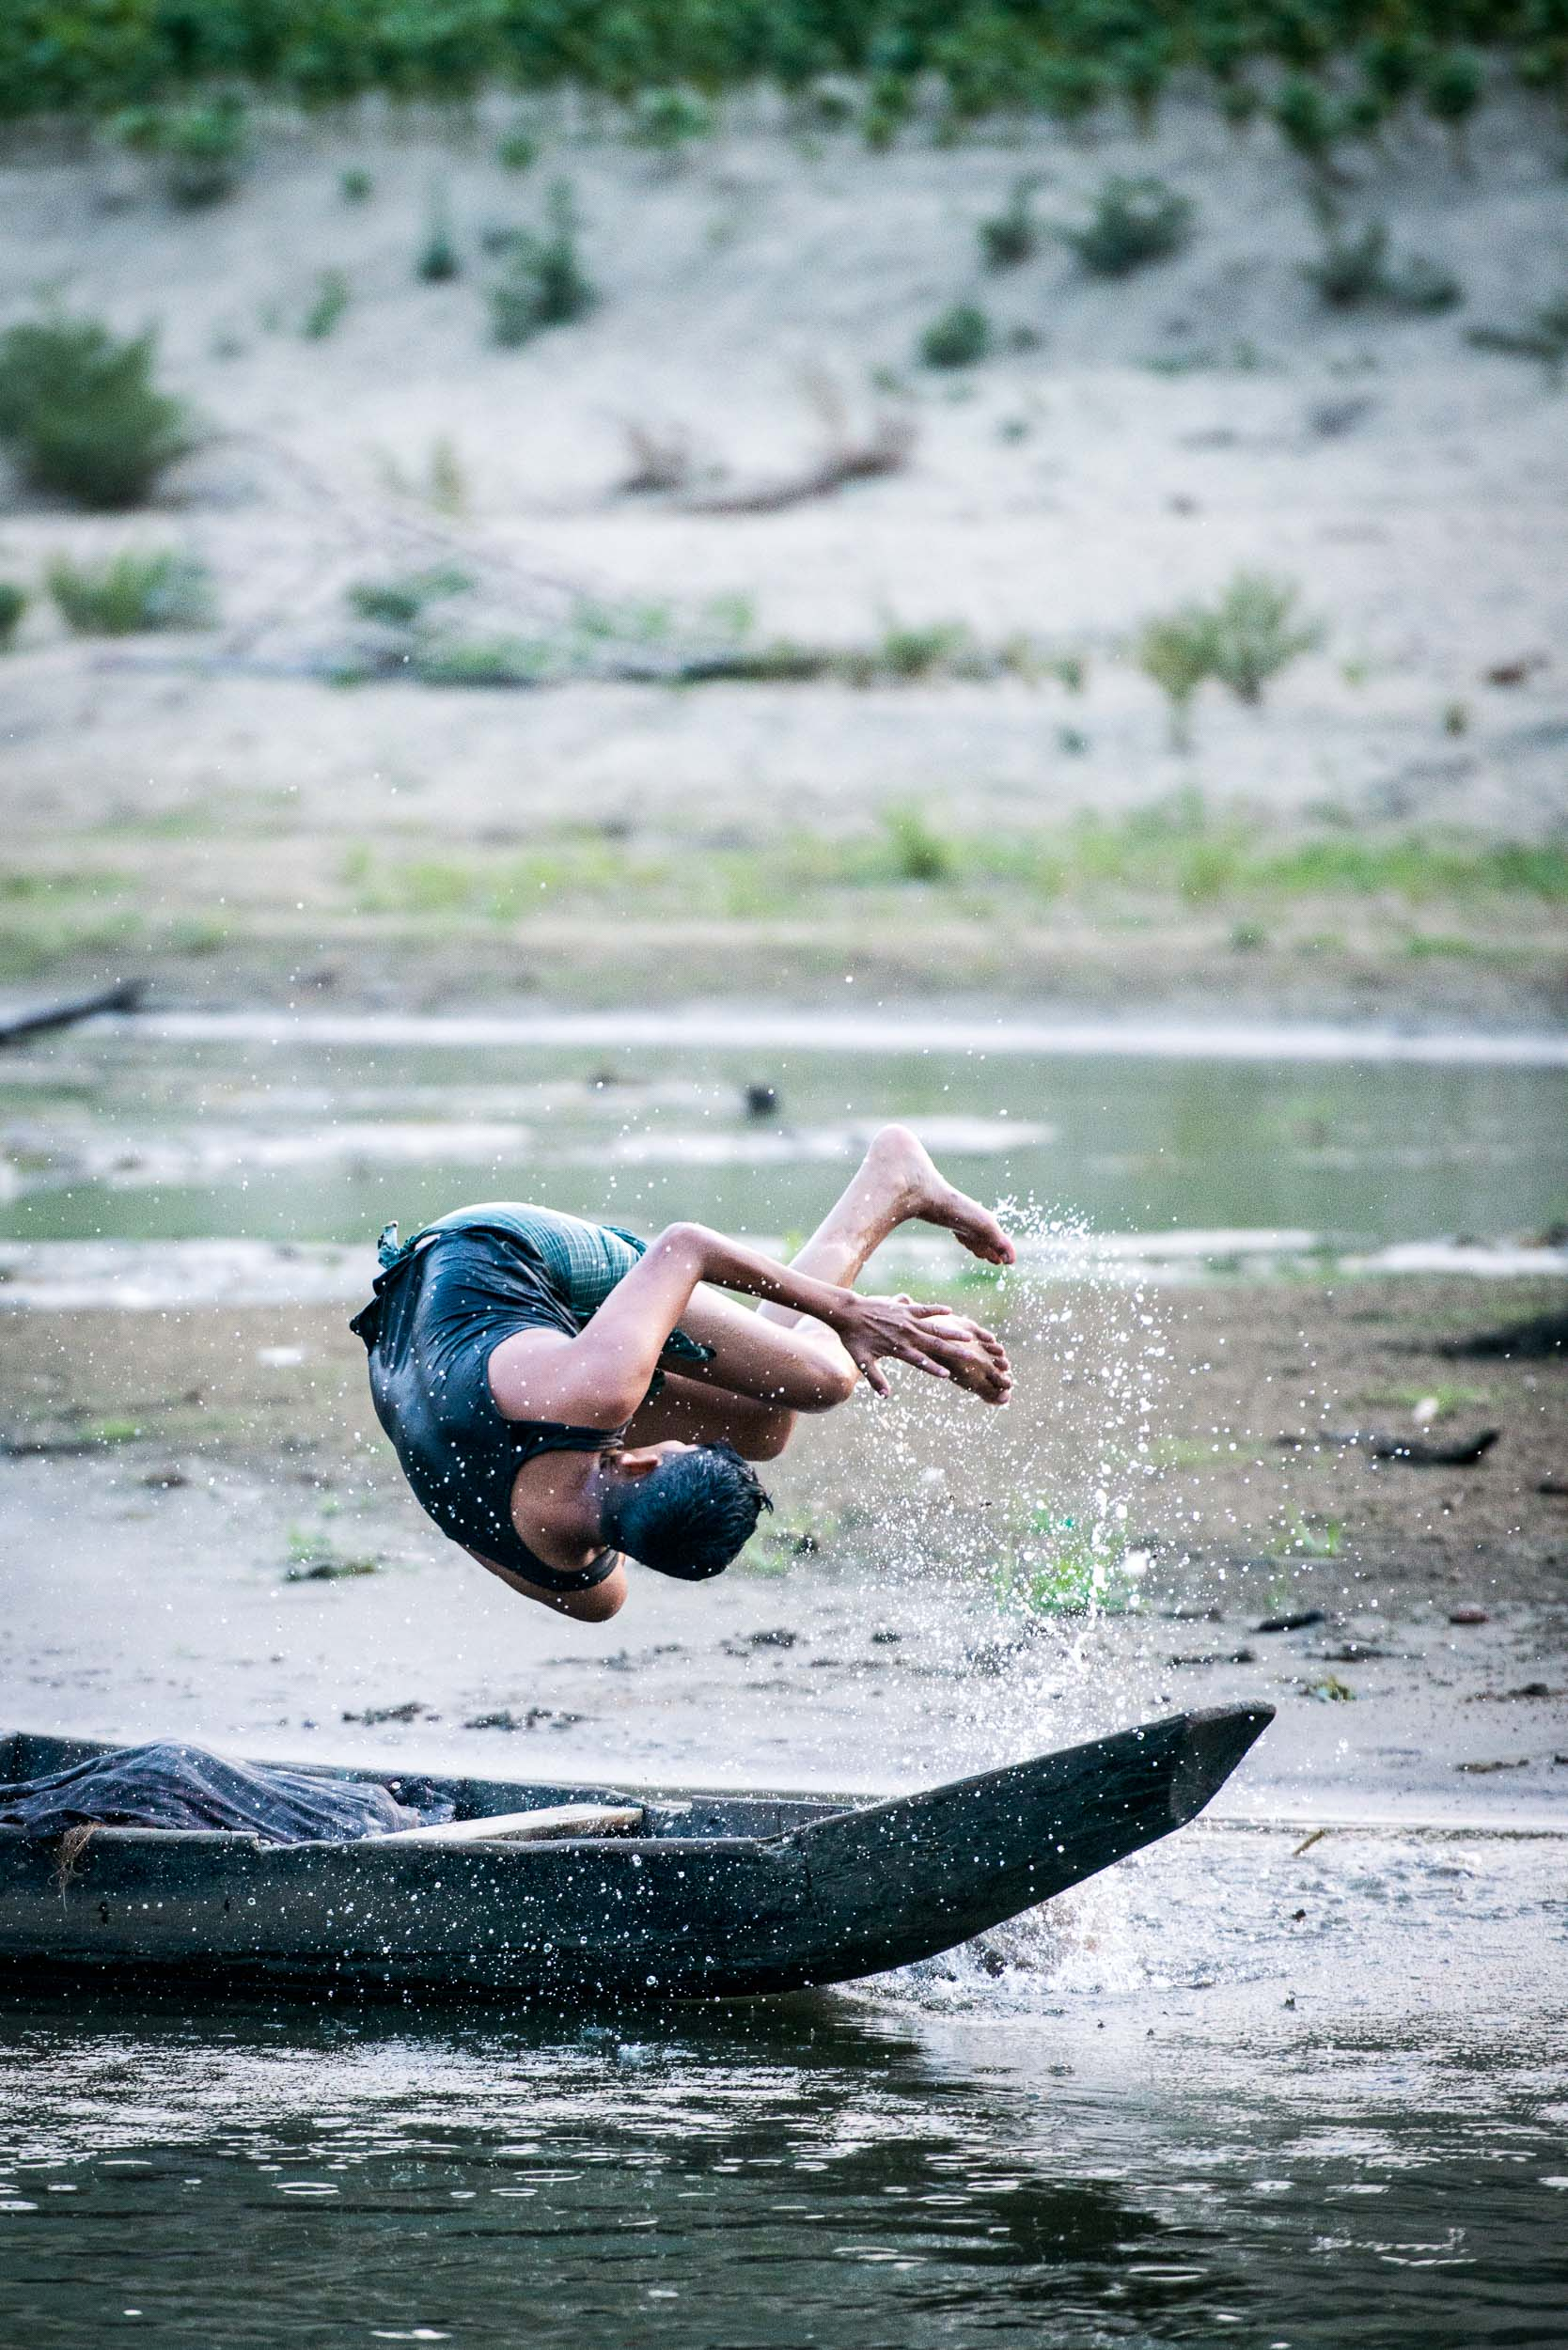 Bangladesh Boy jumping - Travel - Photo credit Nicola Bailey.jpg